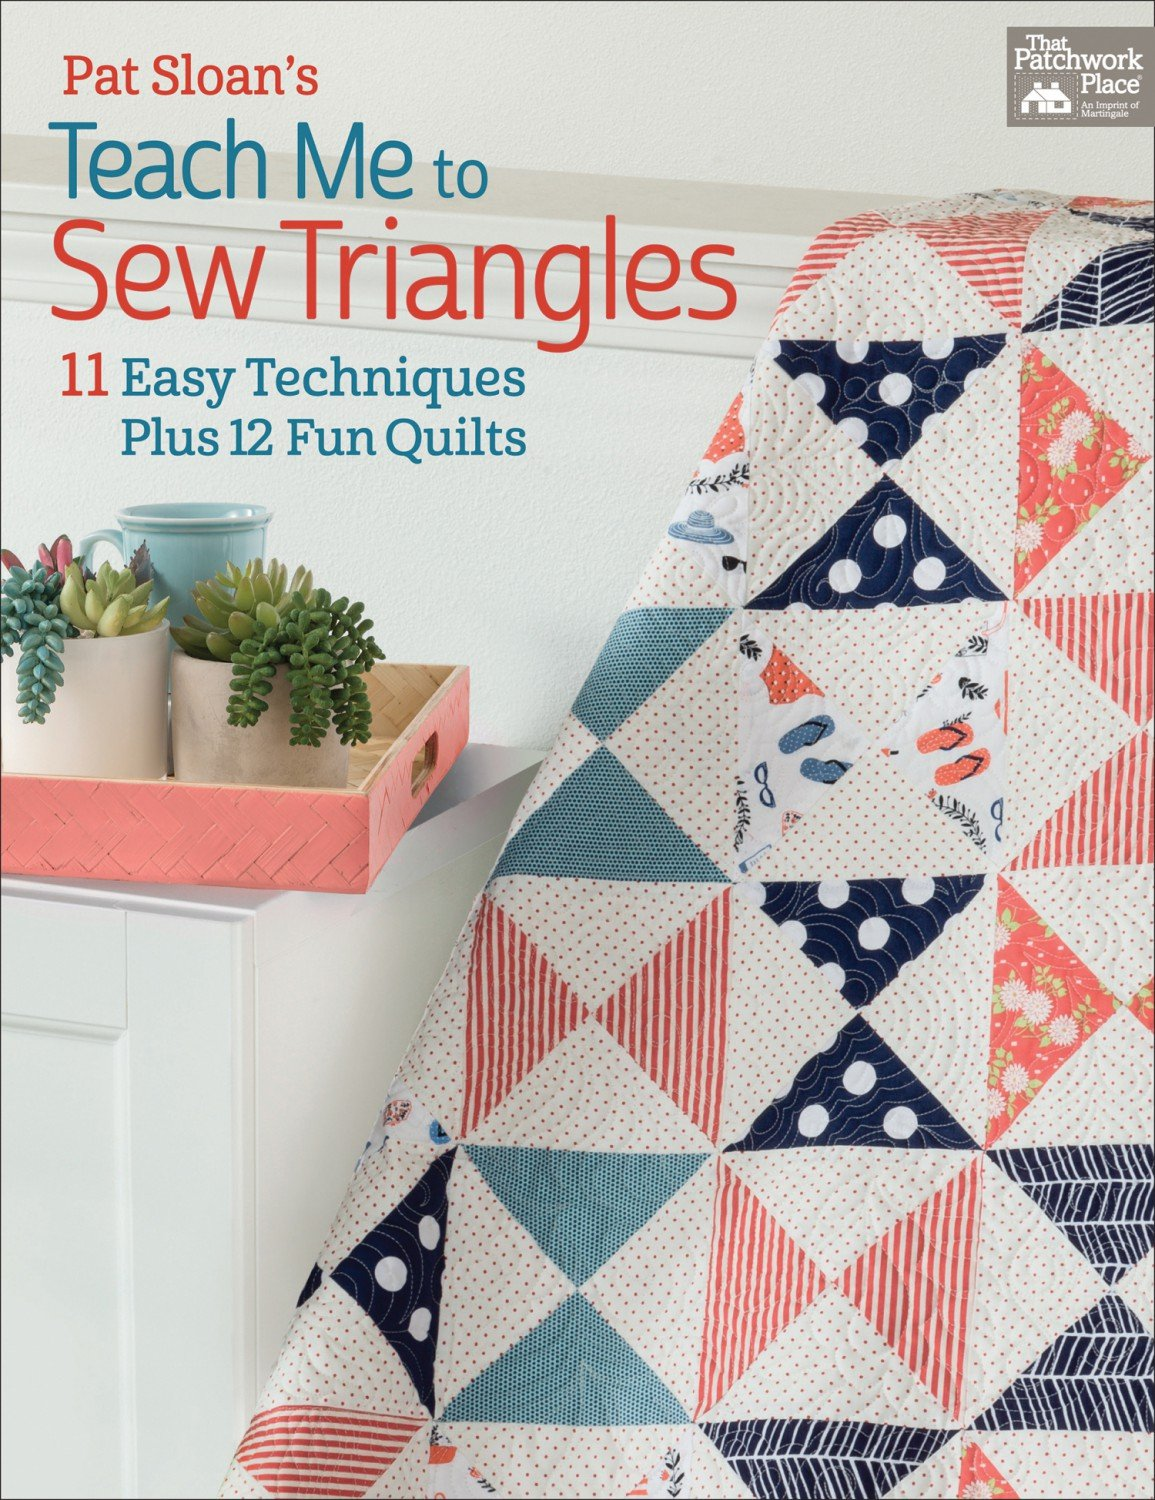 Pat Sloan's Teach Me to Sew Triangles 13 Easy Techniques Plus 12 Fun Quilts 96 pg.